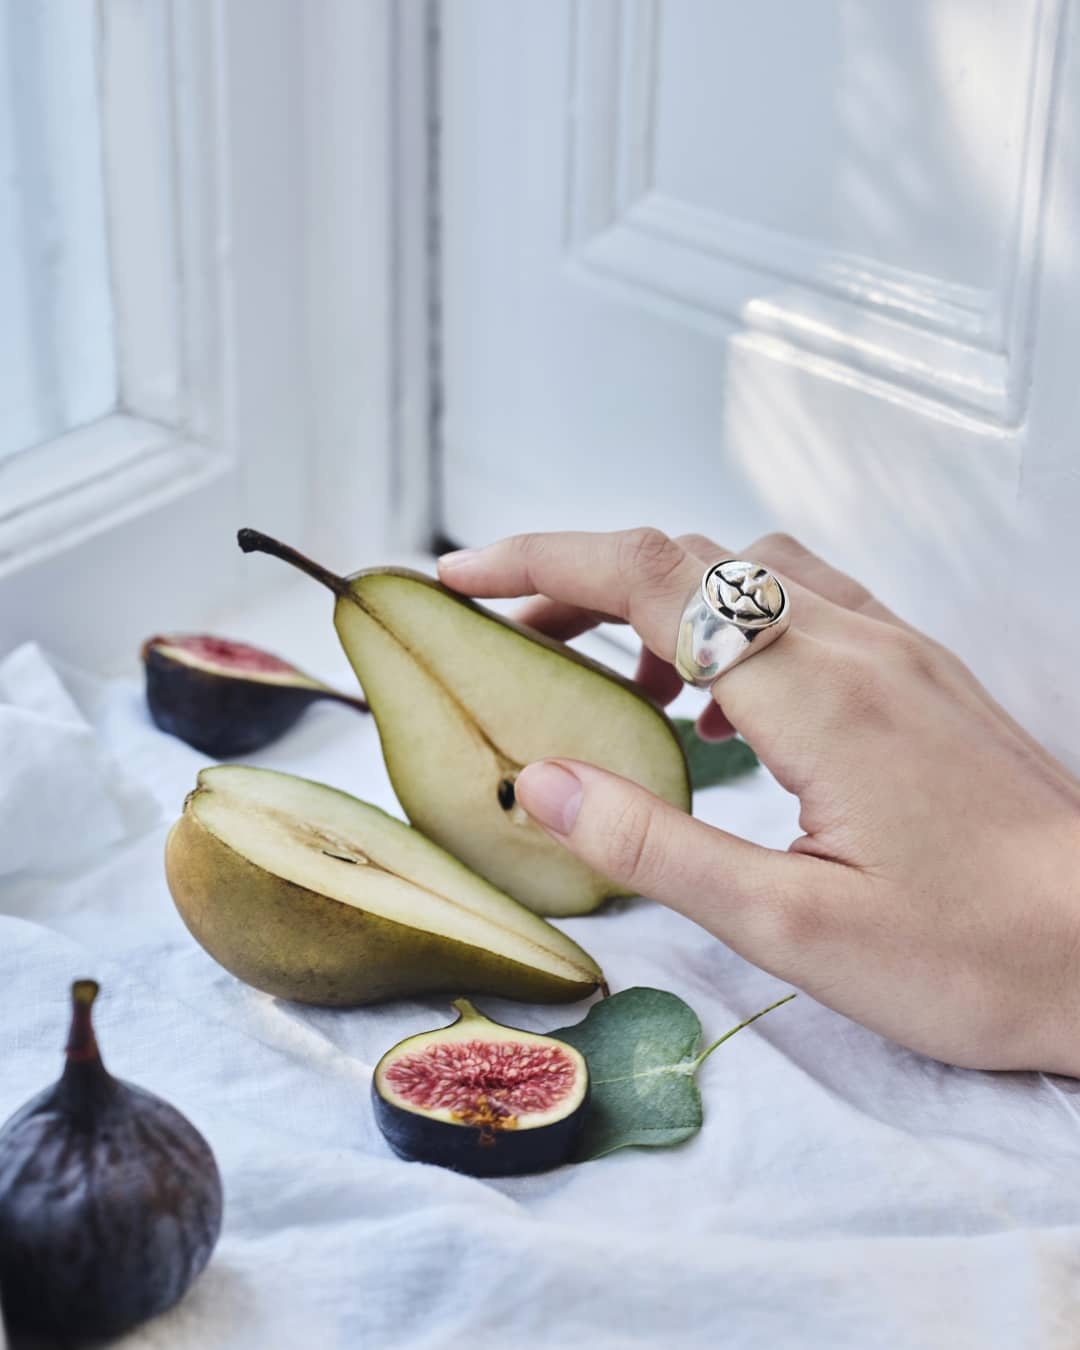 mediumformatphotography pear fig figs fruit jeweller hand ring silver stylist styling style decor interiordecor photographer photography gfx50s designer furniture repostmyfujifilm fujifilm design stilllifephotographer stilllifephotography stilllife interior jewellerydesign jewellery